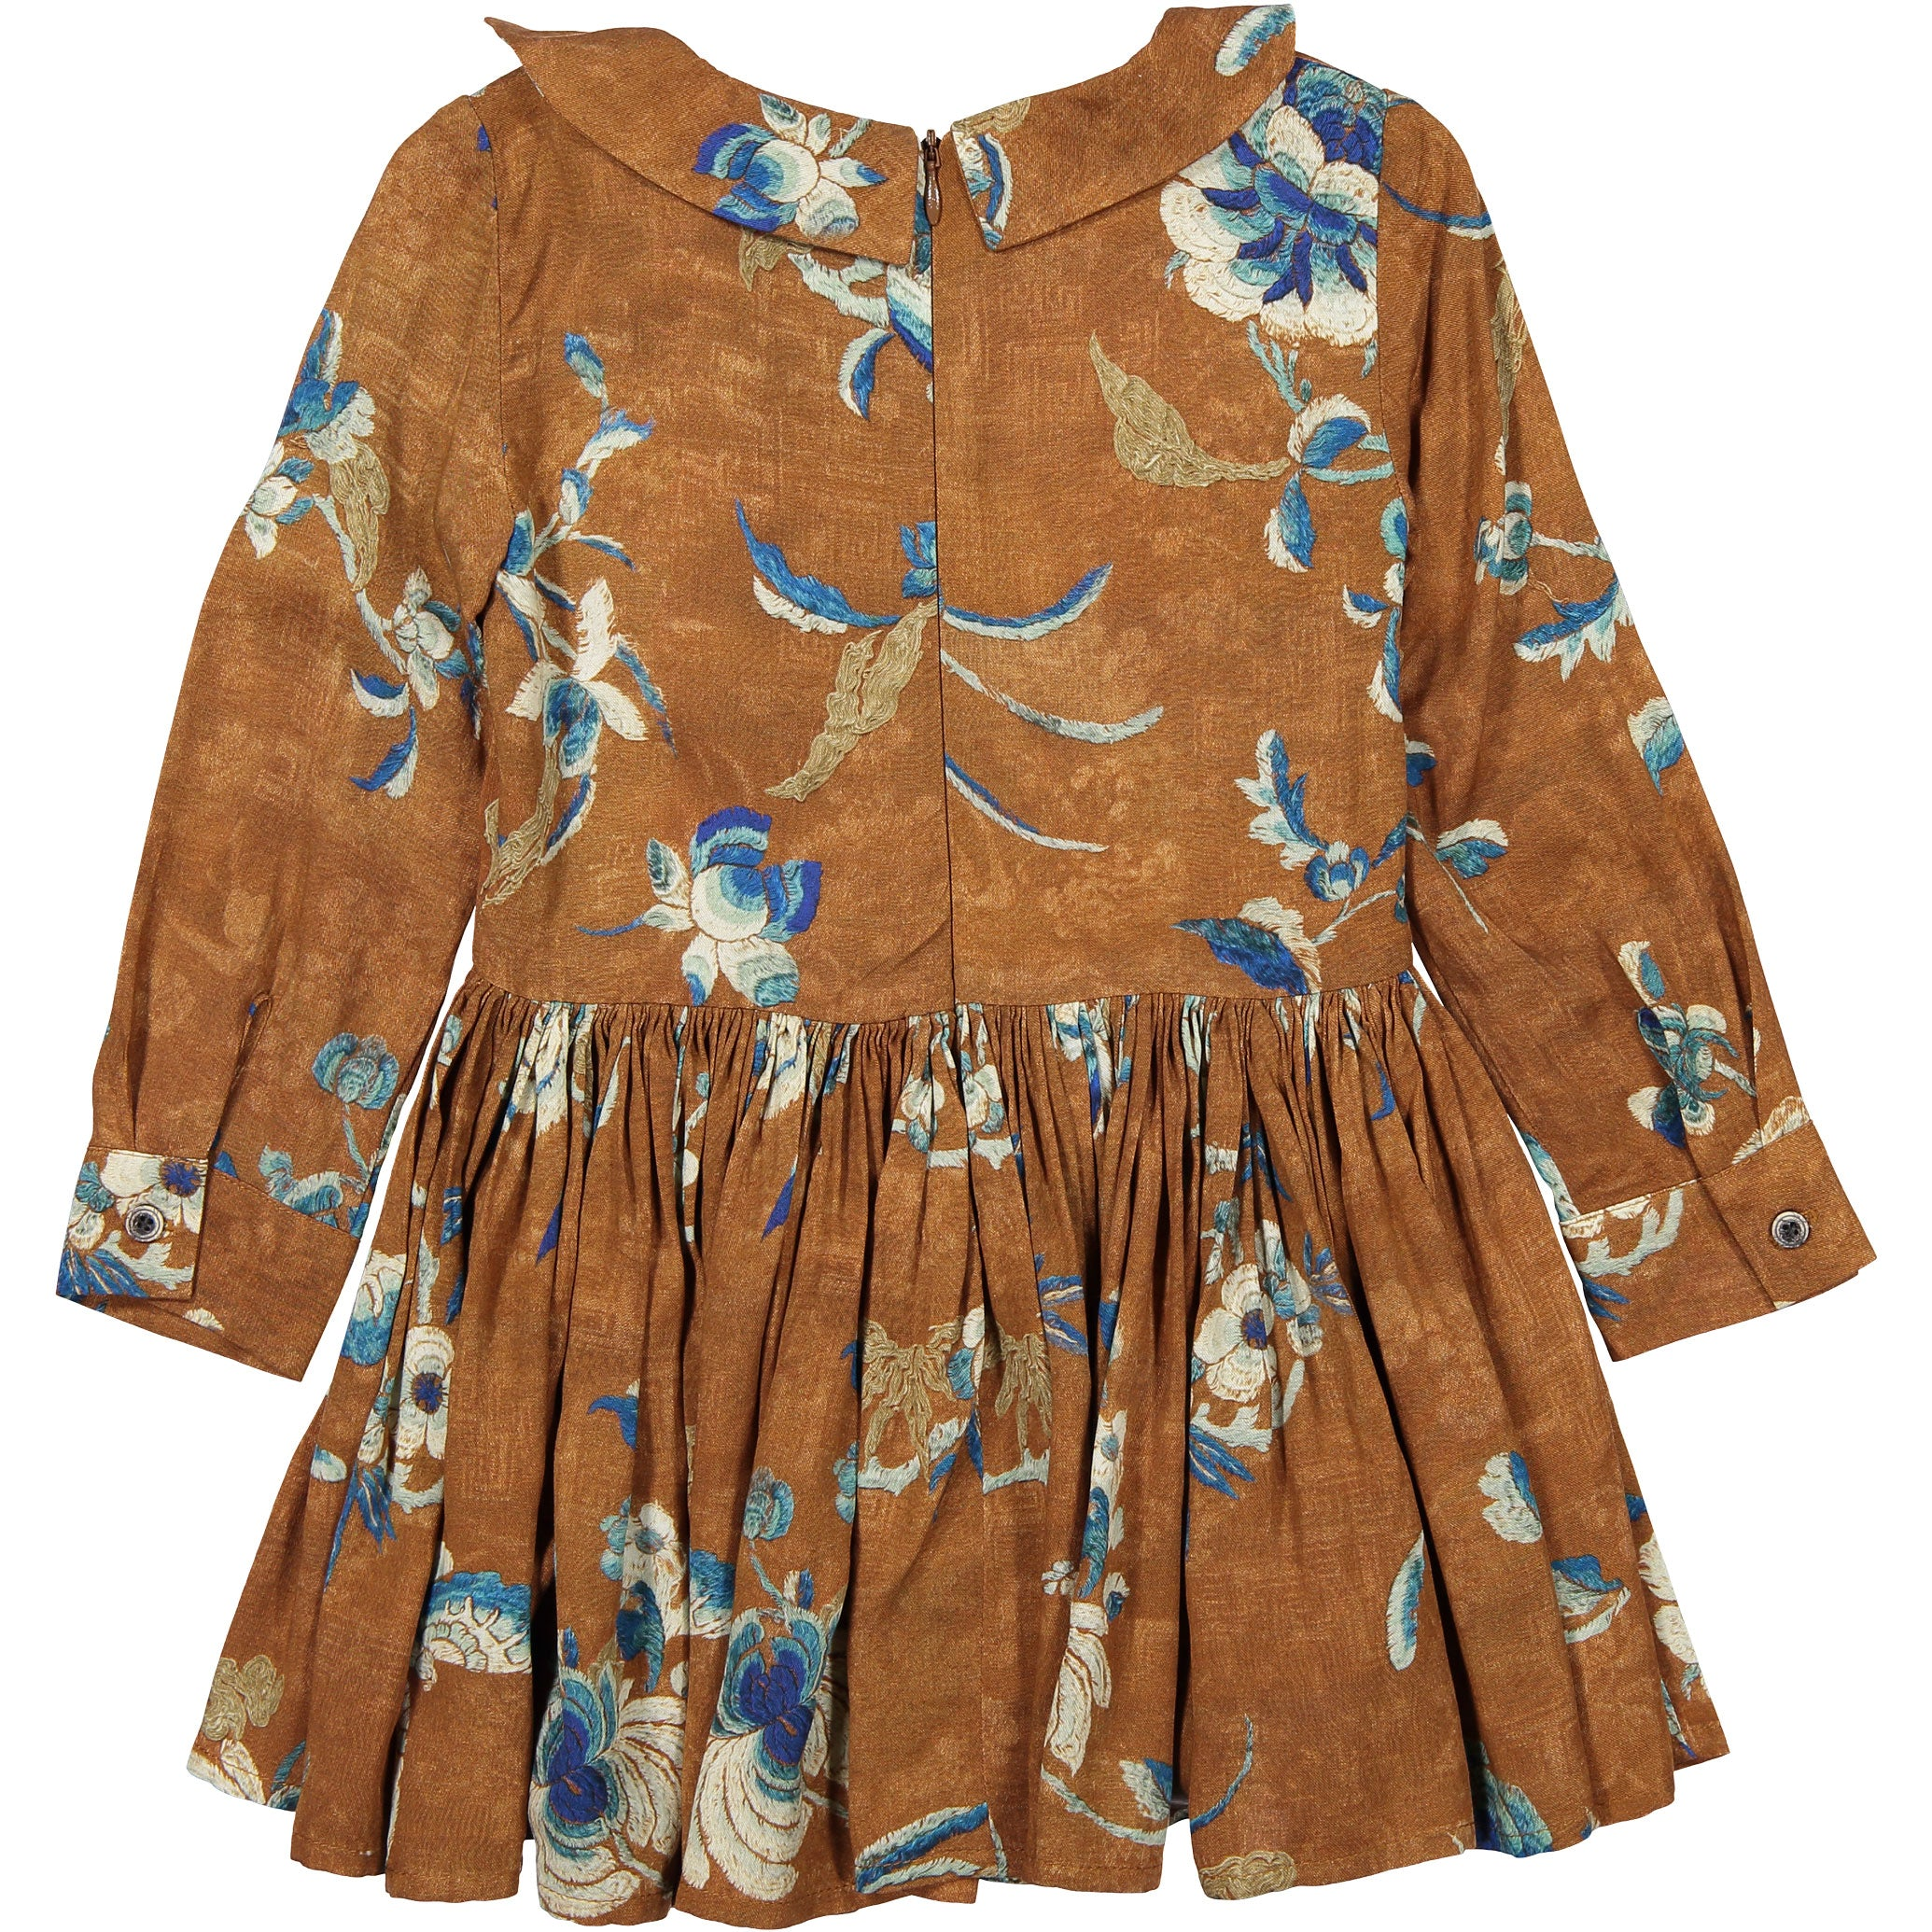 Morley Terracotta Floral Gisele Dress - Ladida